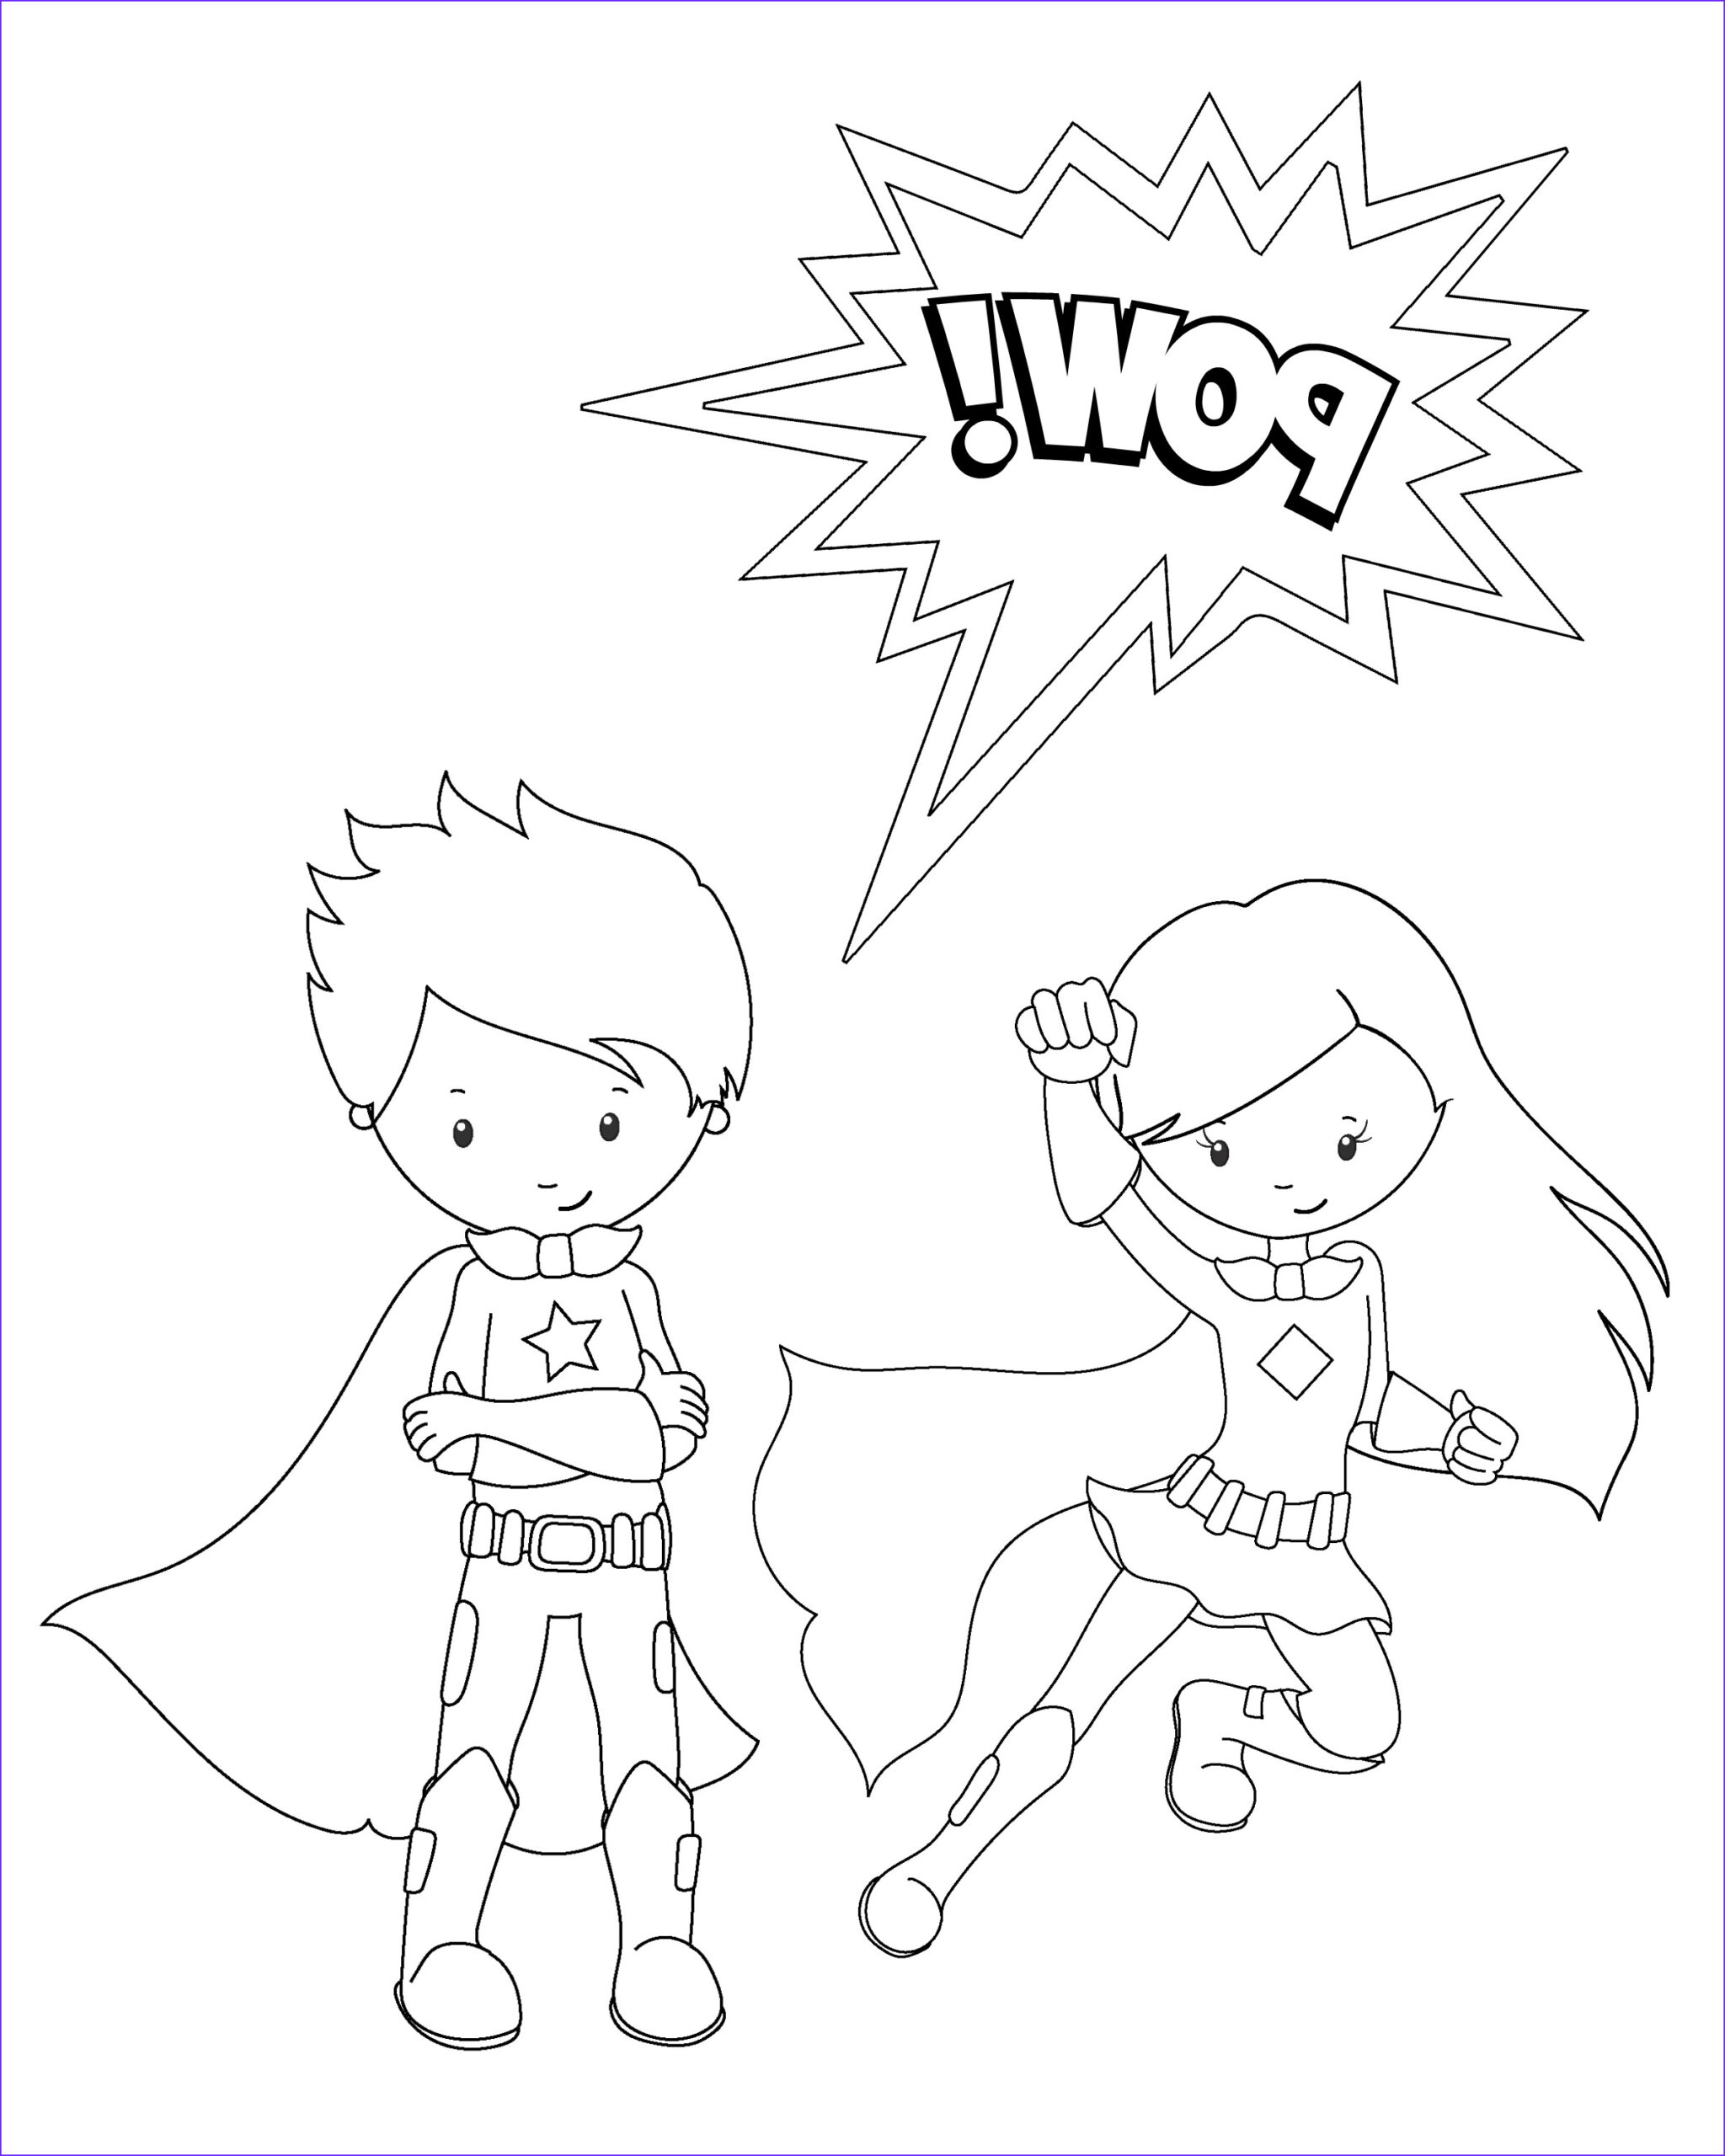 Free Superhero Coloring Pages Best Of Photos Free Printable Superhero Coloring Sheets for Kids Crazy